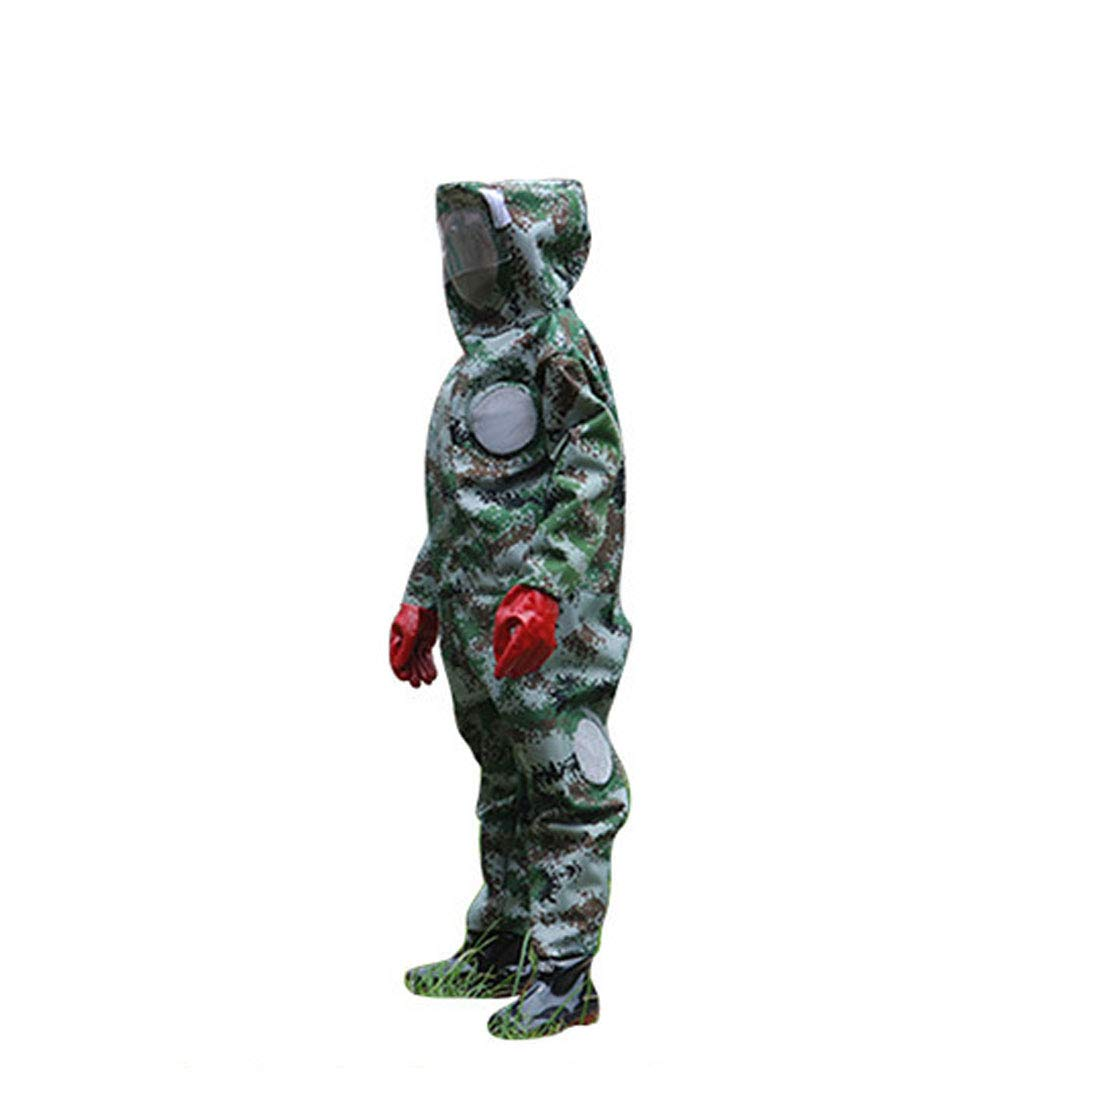 S(160-165) MTGYF Anti-bee Suit Nylon Oxford Anti-horse One-piece Clothing Cooling Breathable Camouflage Wasp Suit Safe And Durable Wear Horse Bee Clothing Bee Coat Bee Cap